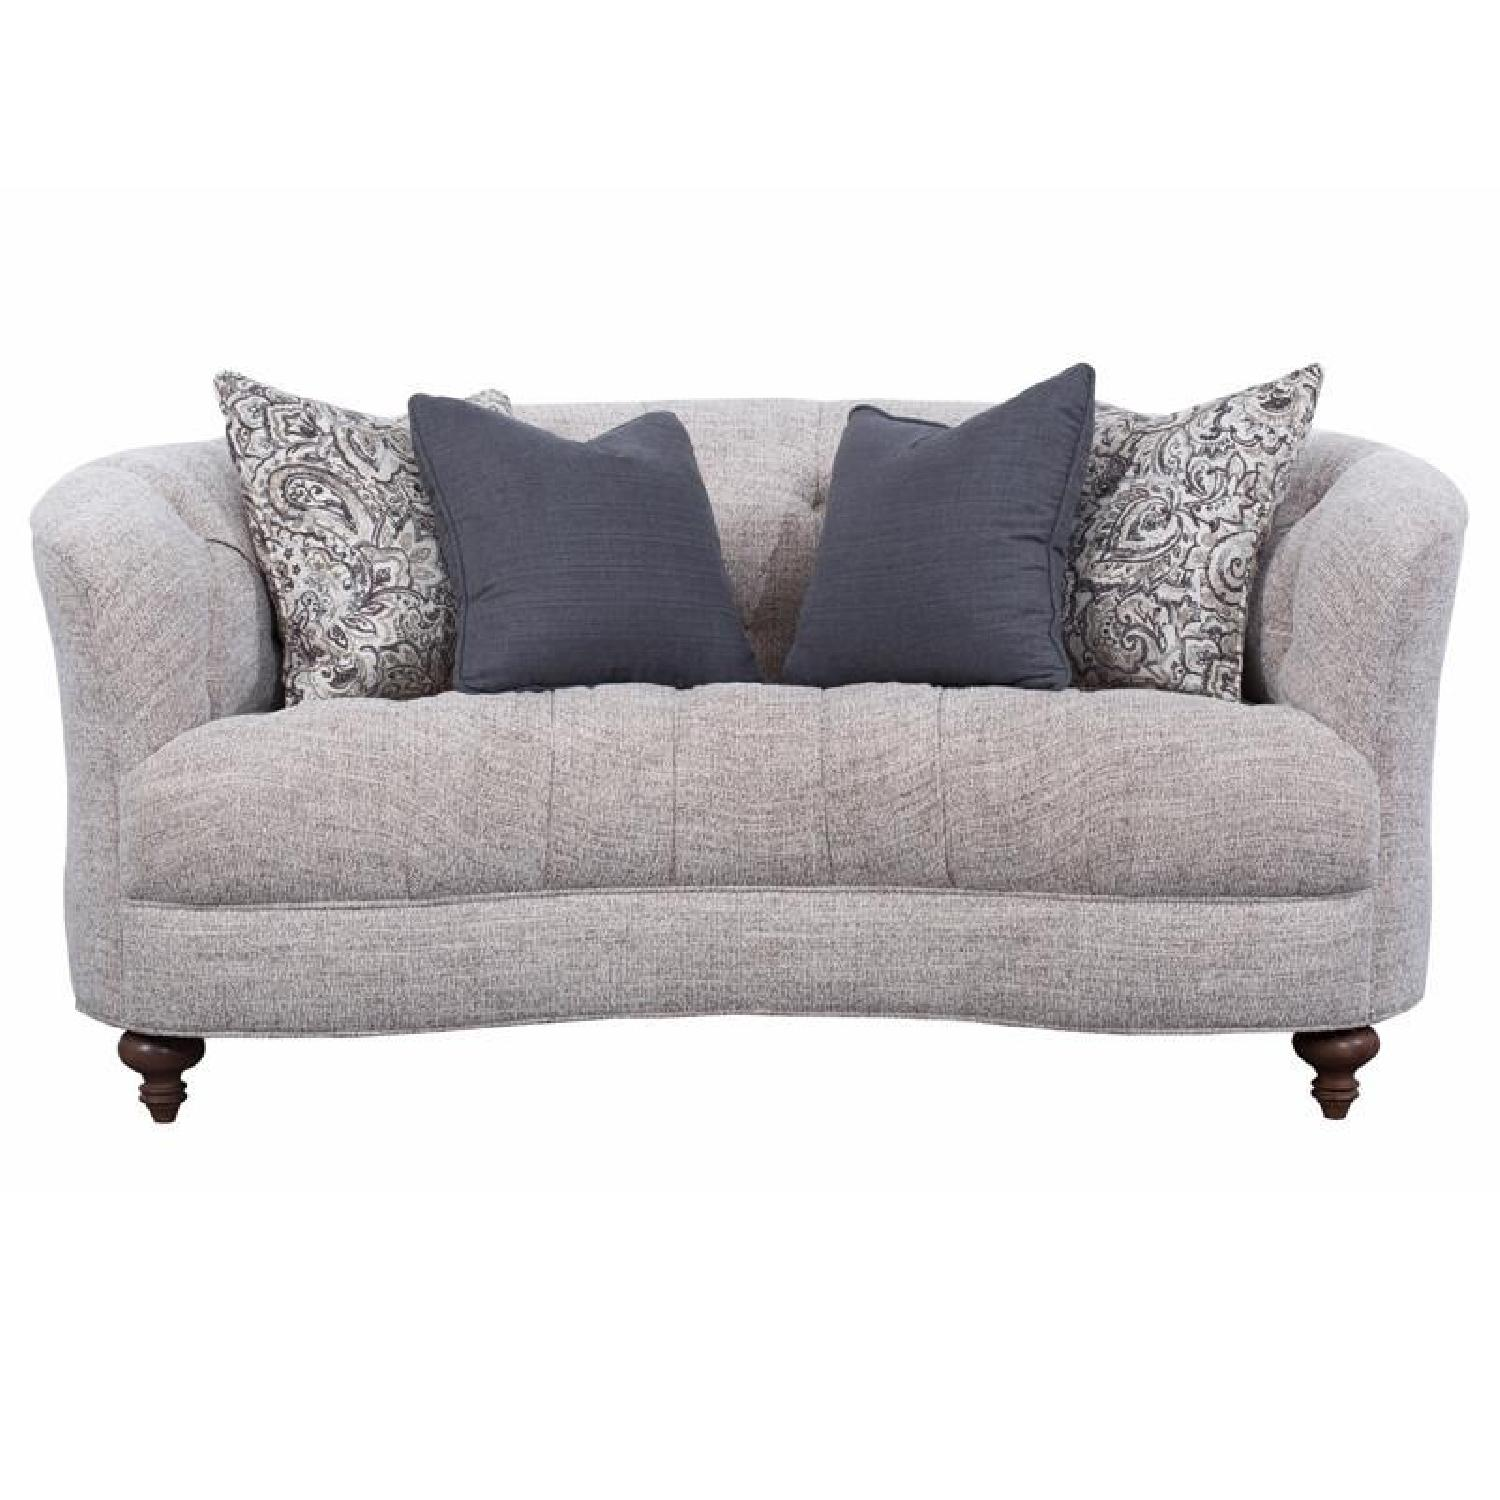 Magnussen Home Furnishings Rounded Loveseat